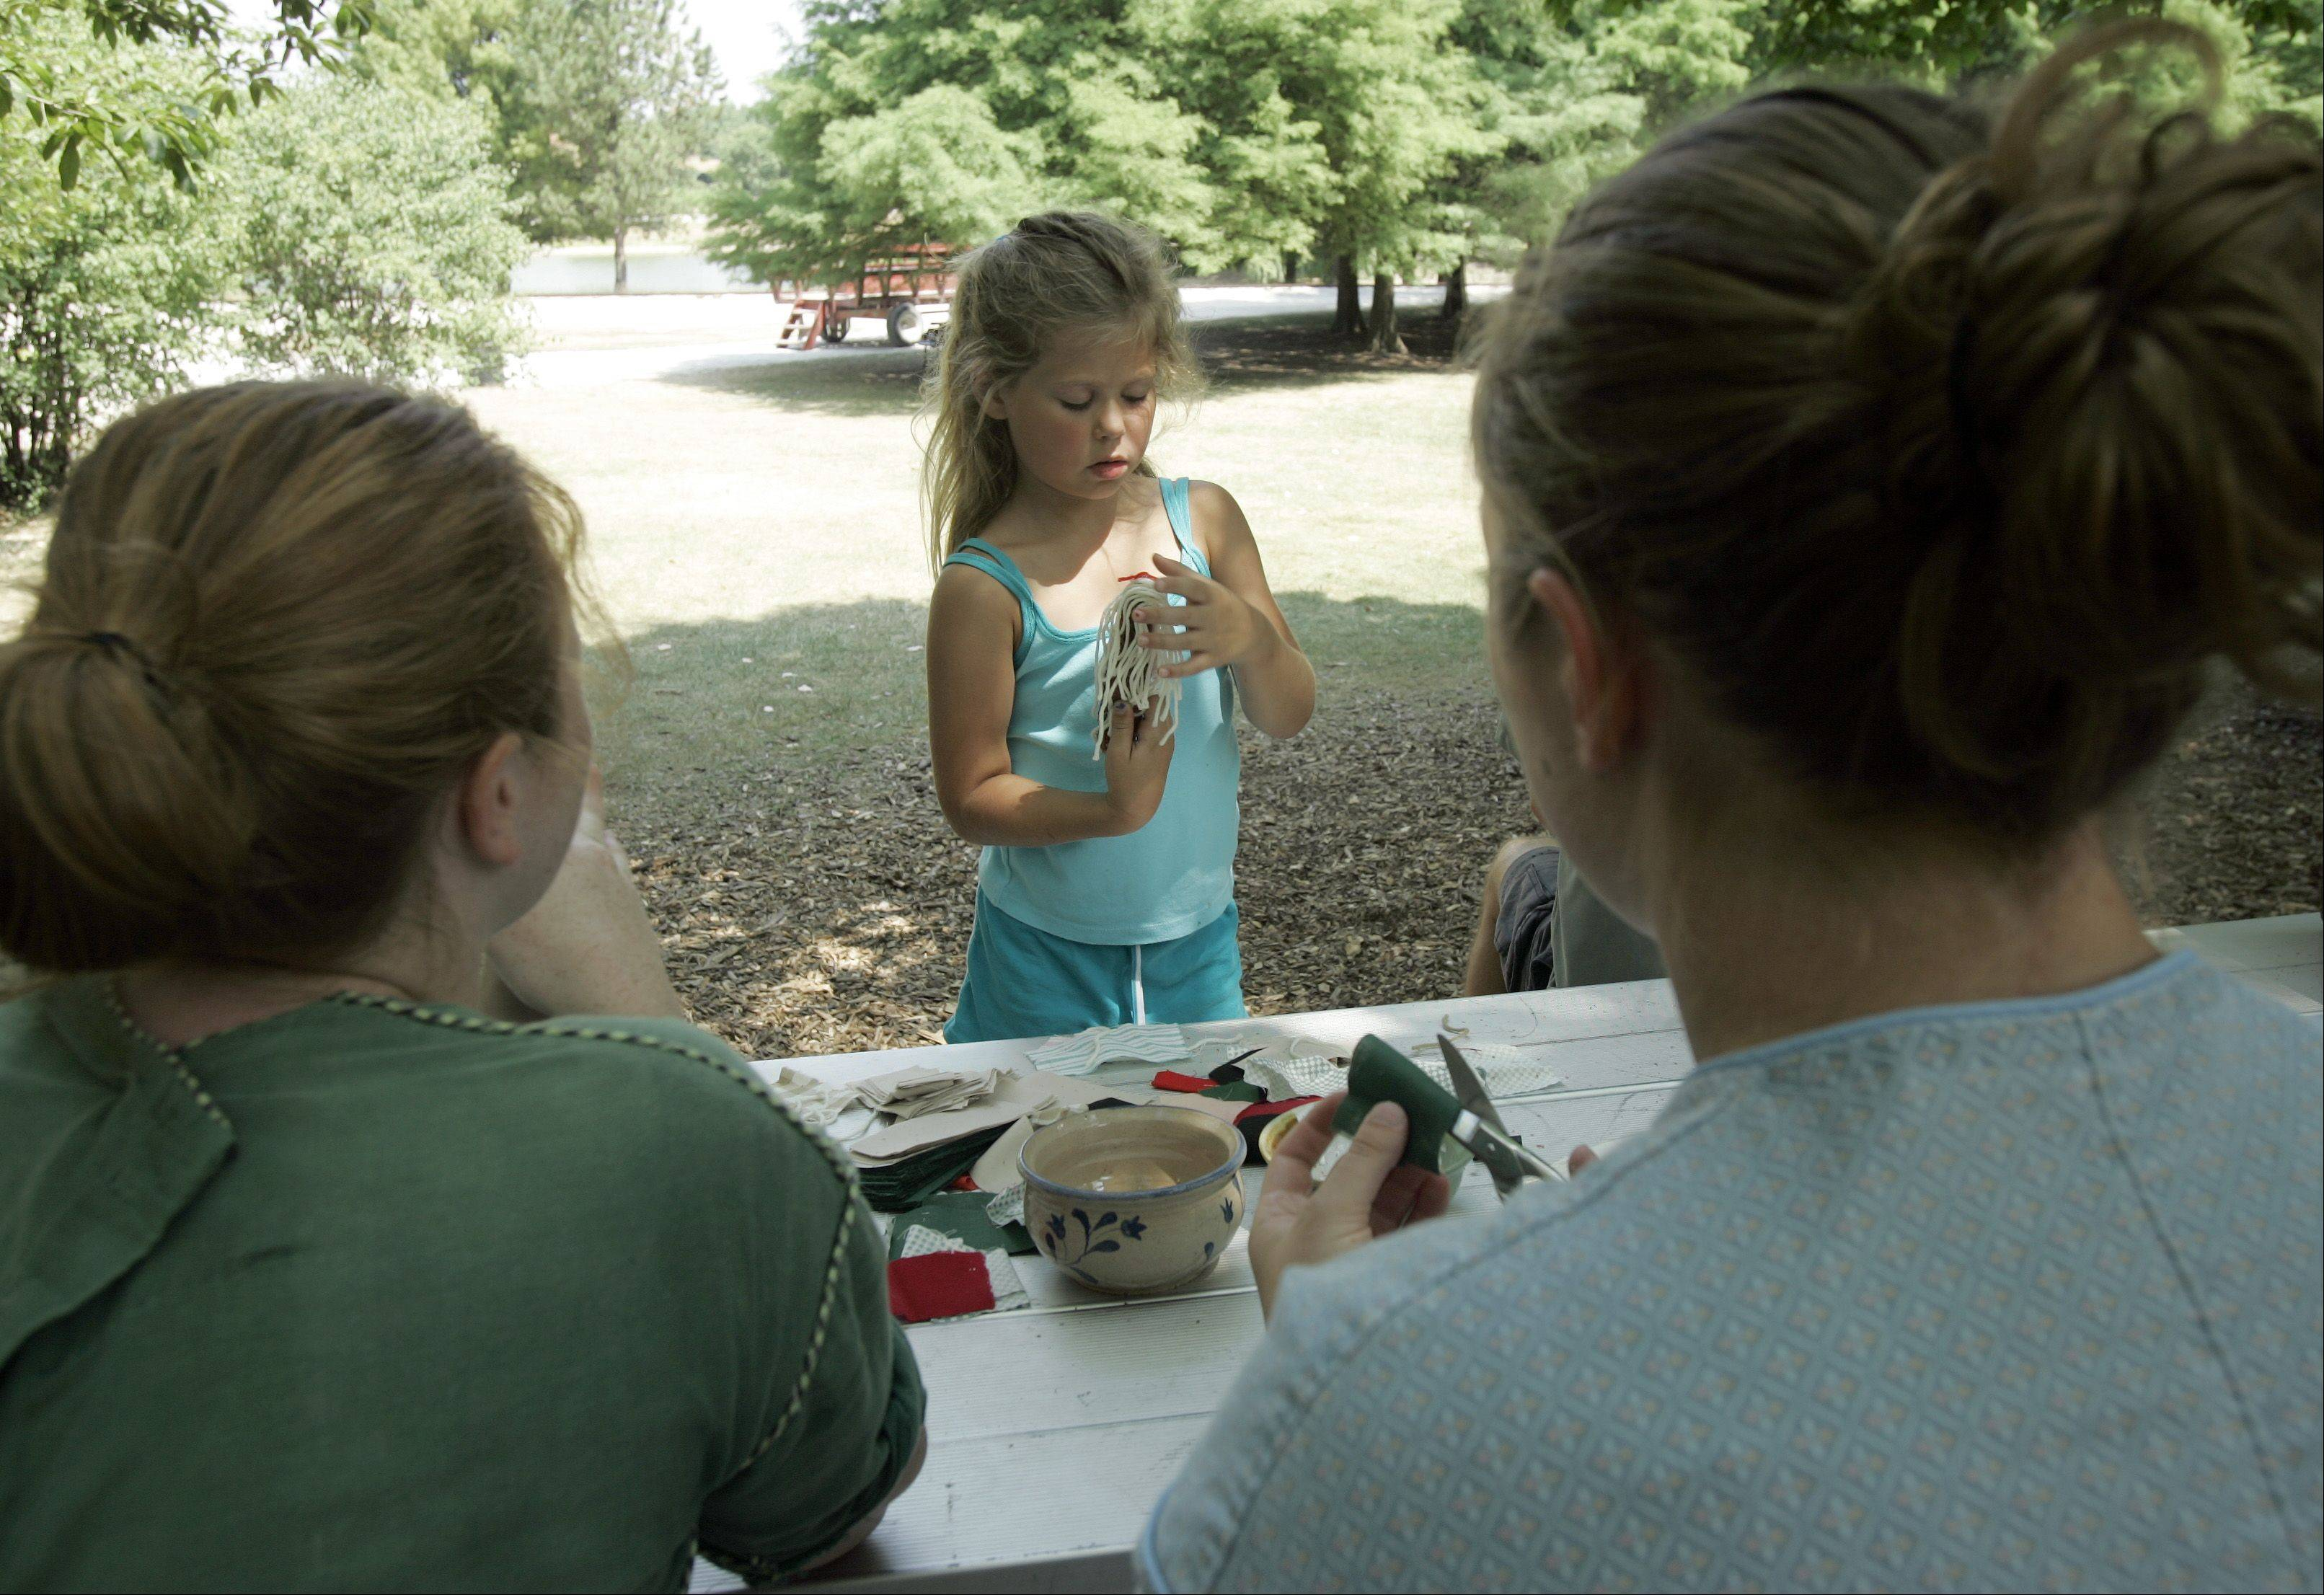 Kids can make corn cob dolls during Blackberry Farm's Fall Harvest, which aims to take visitors back to the 1840s from noon to 4 p.m. Sunday, Sept. 11.